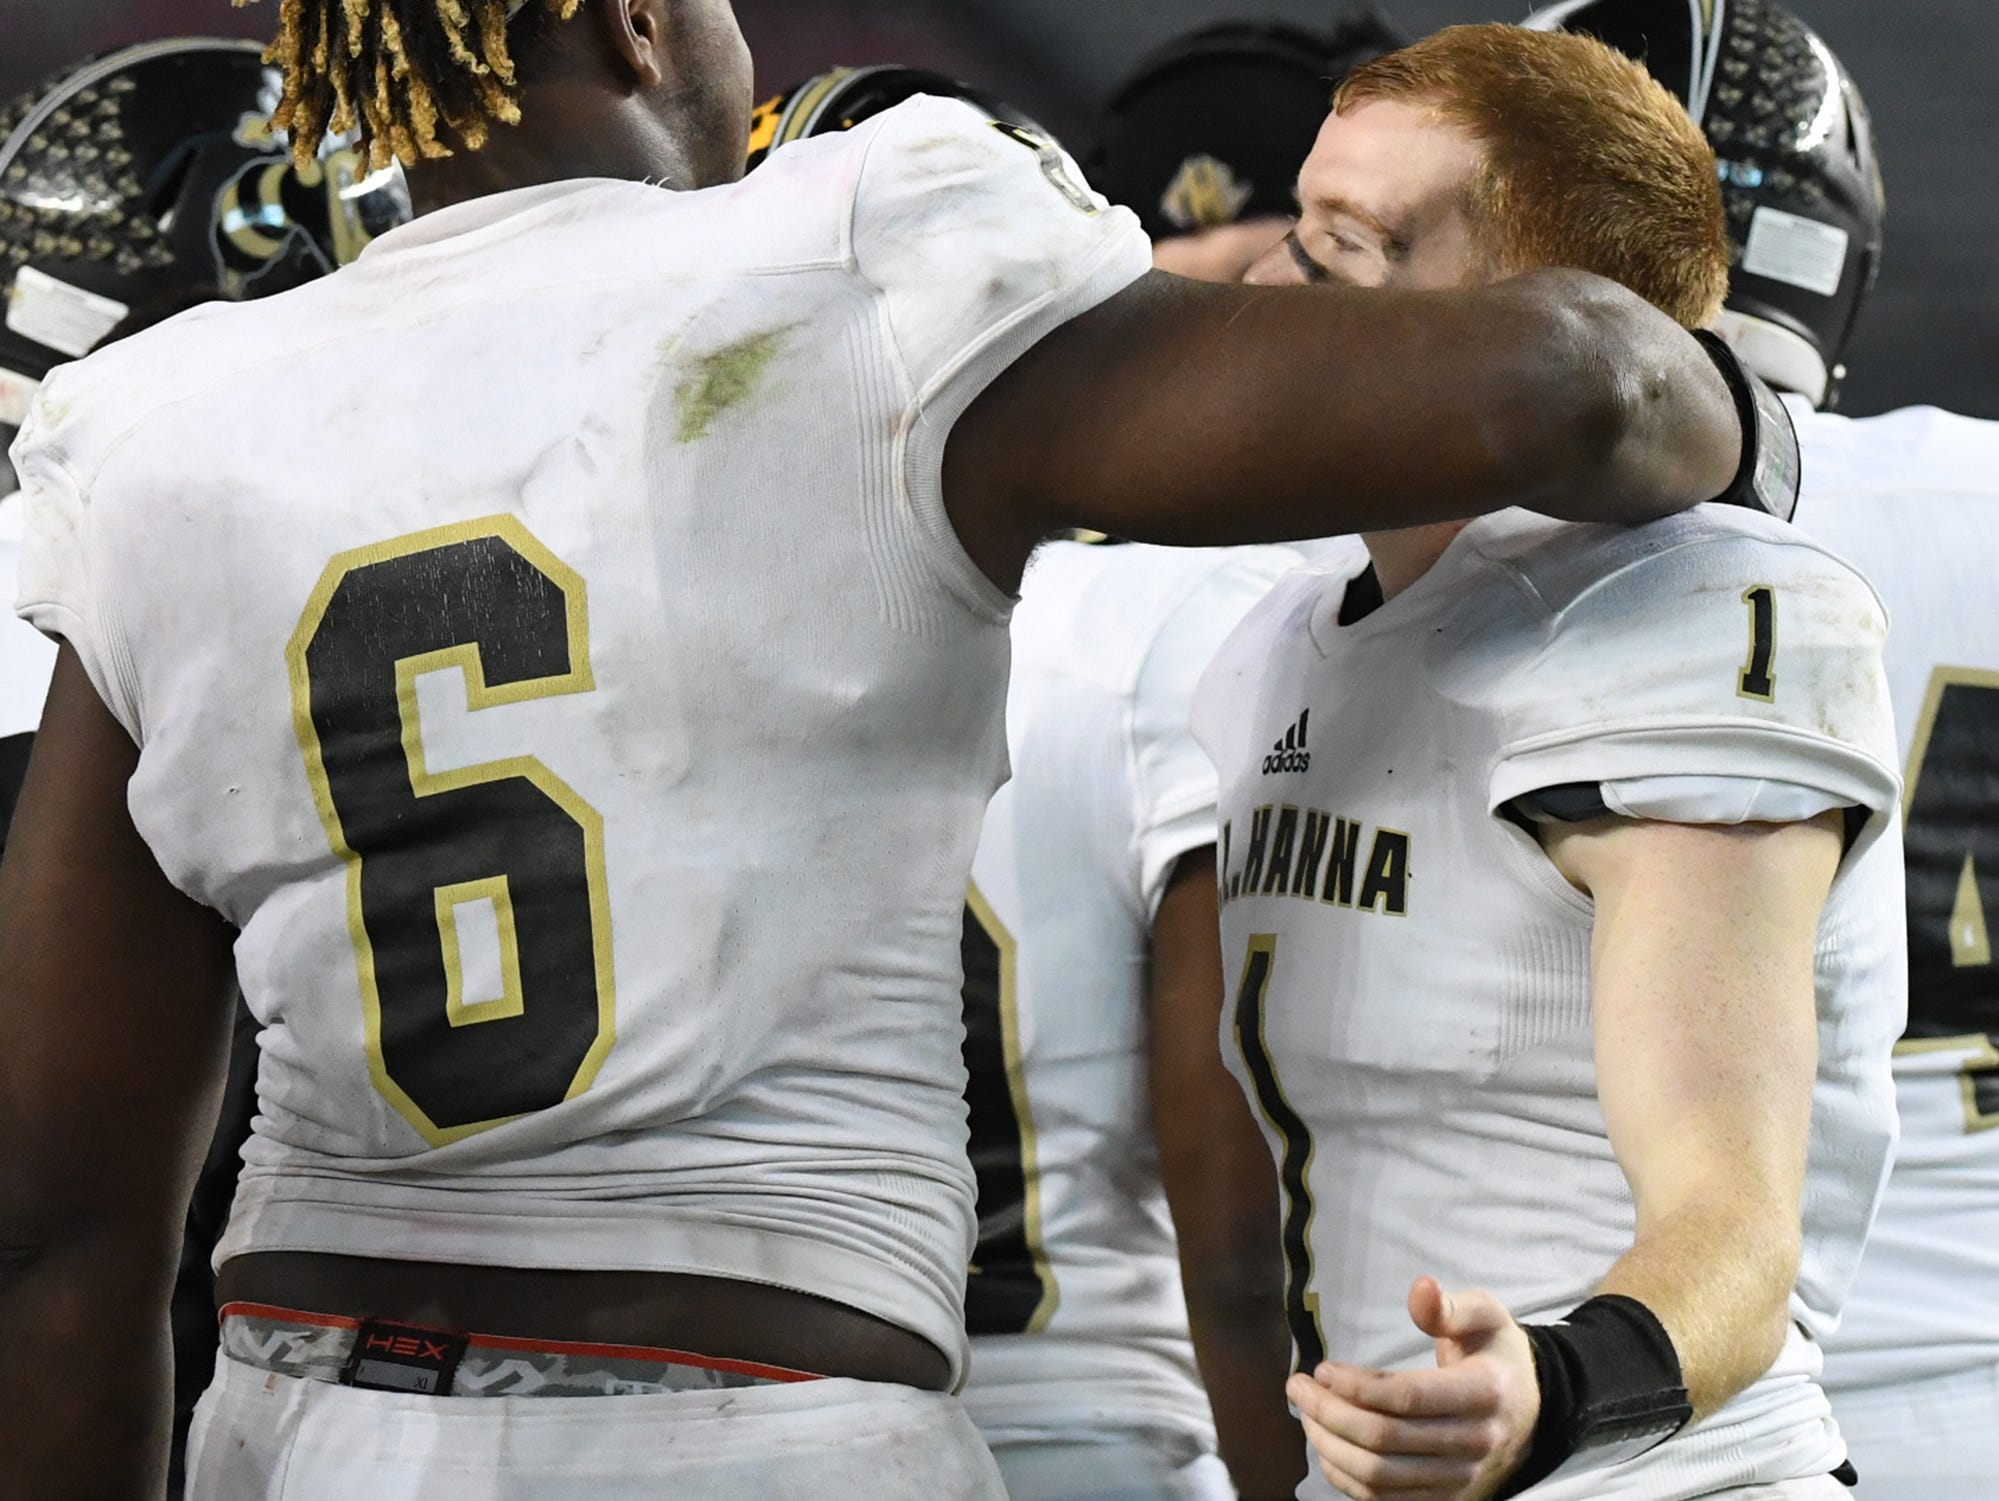 TL Hanna senior Zacch Pickens (6) hugs TL Hanna senior Alex Meredith (1) after the game of the Class AAAAA state championship game at Williams-Brice Stadium in Columbia Saturday, December 8, 2018.